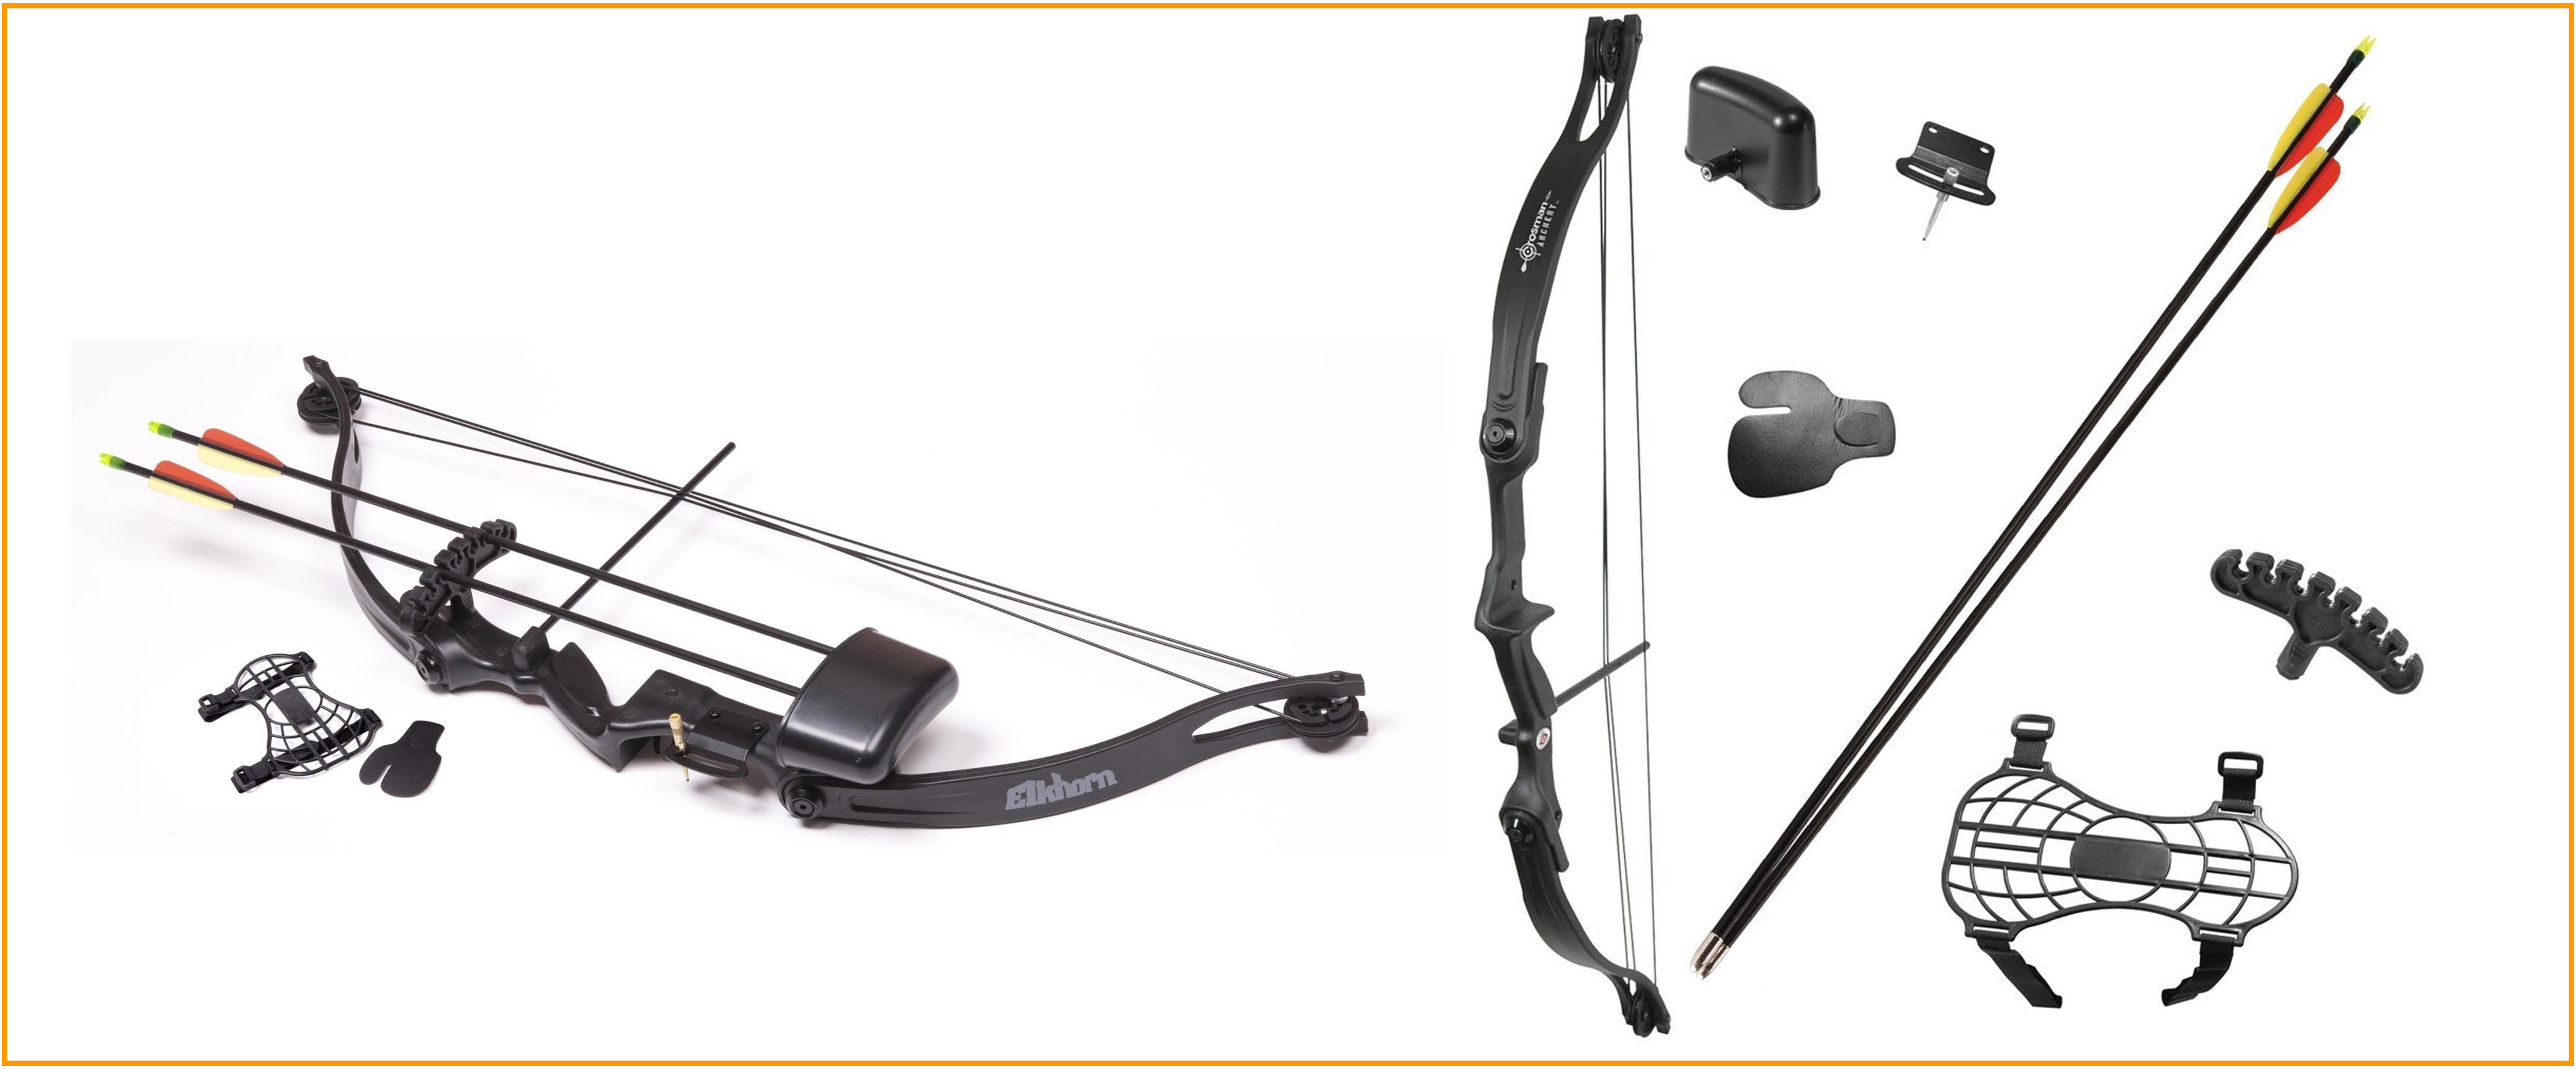 Crossman-Elkhorn-Jr.-Compound-Bow-e1525203106390